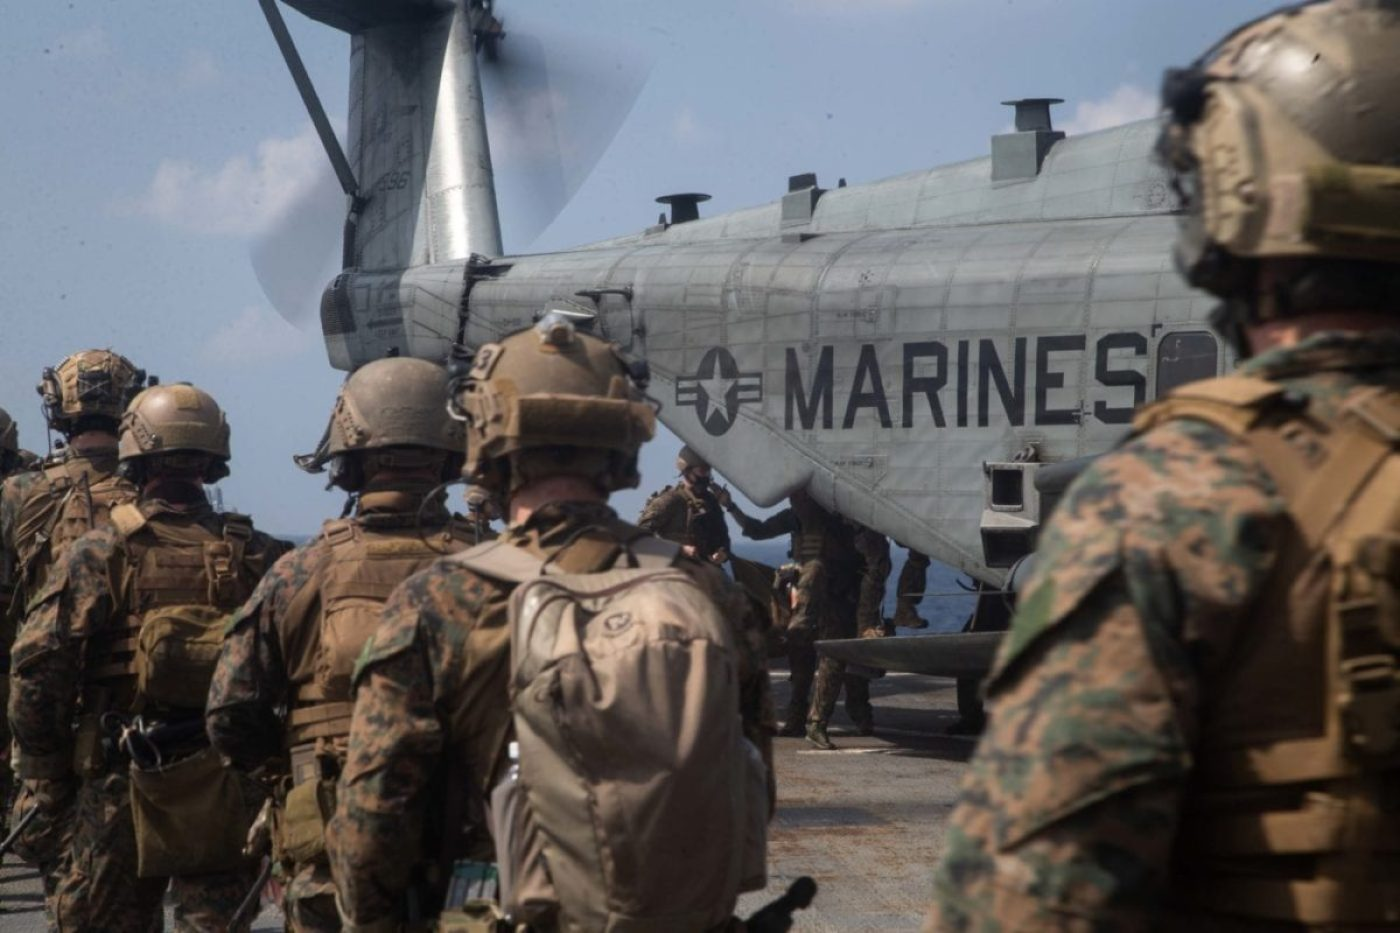 U.S. reconnaissance Marines with the Maritime Raid Force, 31st Marine Expeditionary Unit (MEU) exfiltrate towards a CH-53E Super Stallion with Marine Medium Tiltrotor Squadron 262 (Reinforced), 31st MEU. (U.S. Marine Corps photo by Sgt. Danny Gonzalez)